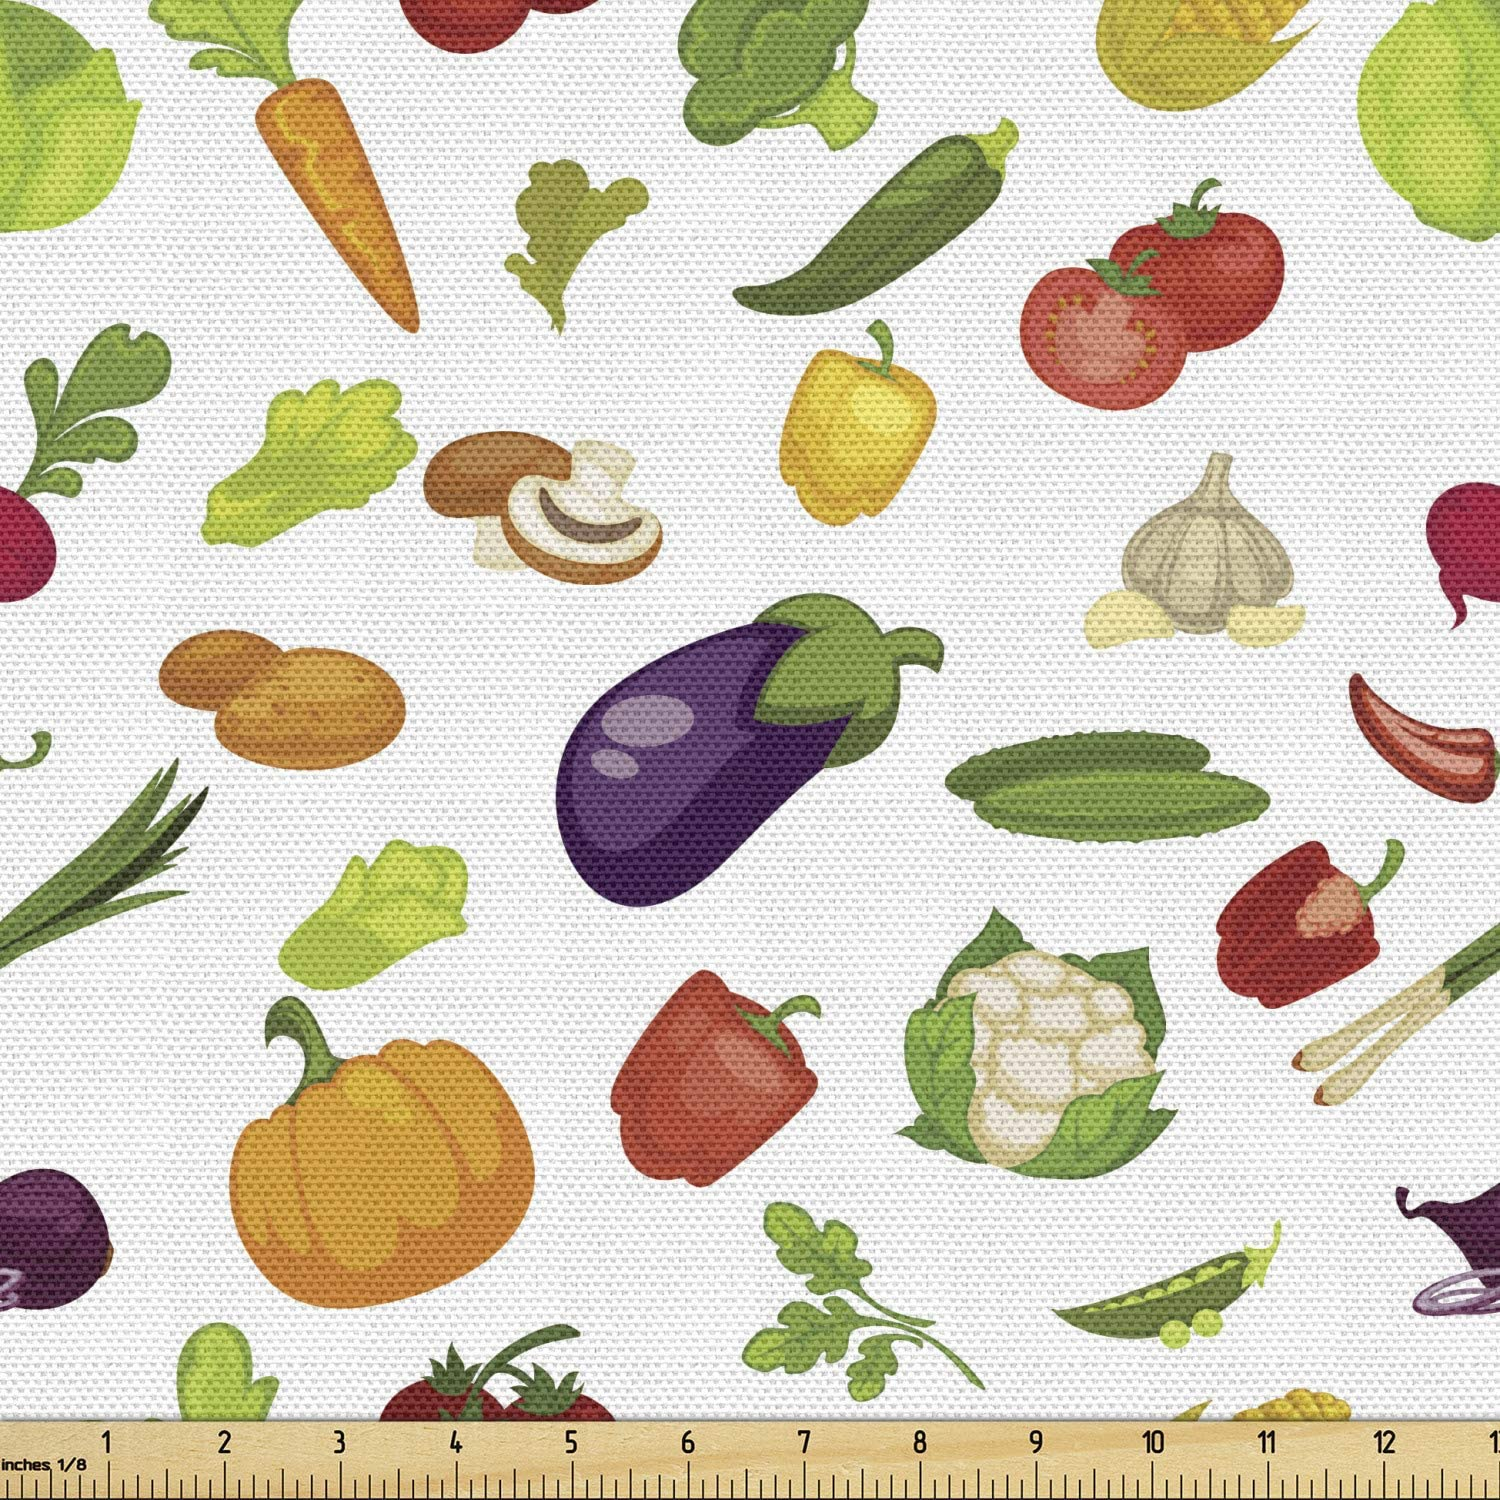 Ambesonne Fruits and Vegetables Fabric by The Yard, Pattern of Scattered Organic Food Products on a Plain Background, Decorative Fabric for Upholstery and Home Accents, 1 Yard, White Green